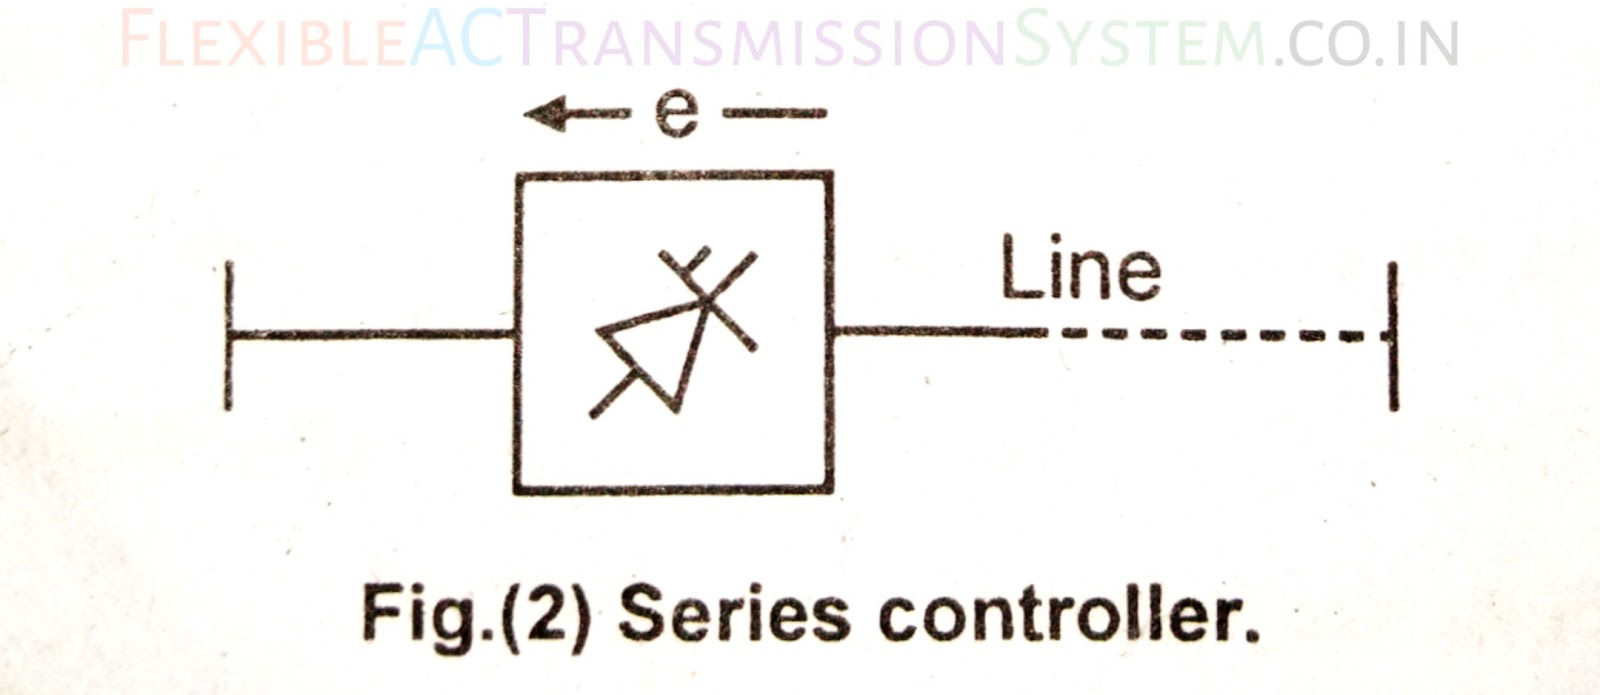 medium resolution of the series controller could be a variable impedance such as a capacitor reactor etc or a power electronics based variable source of main frequency